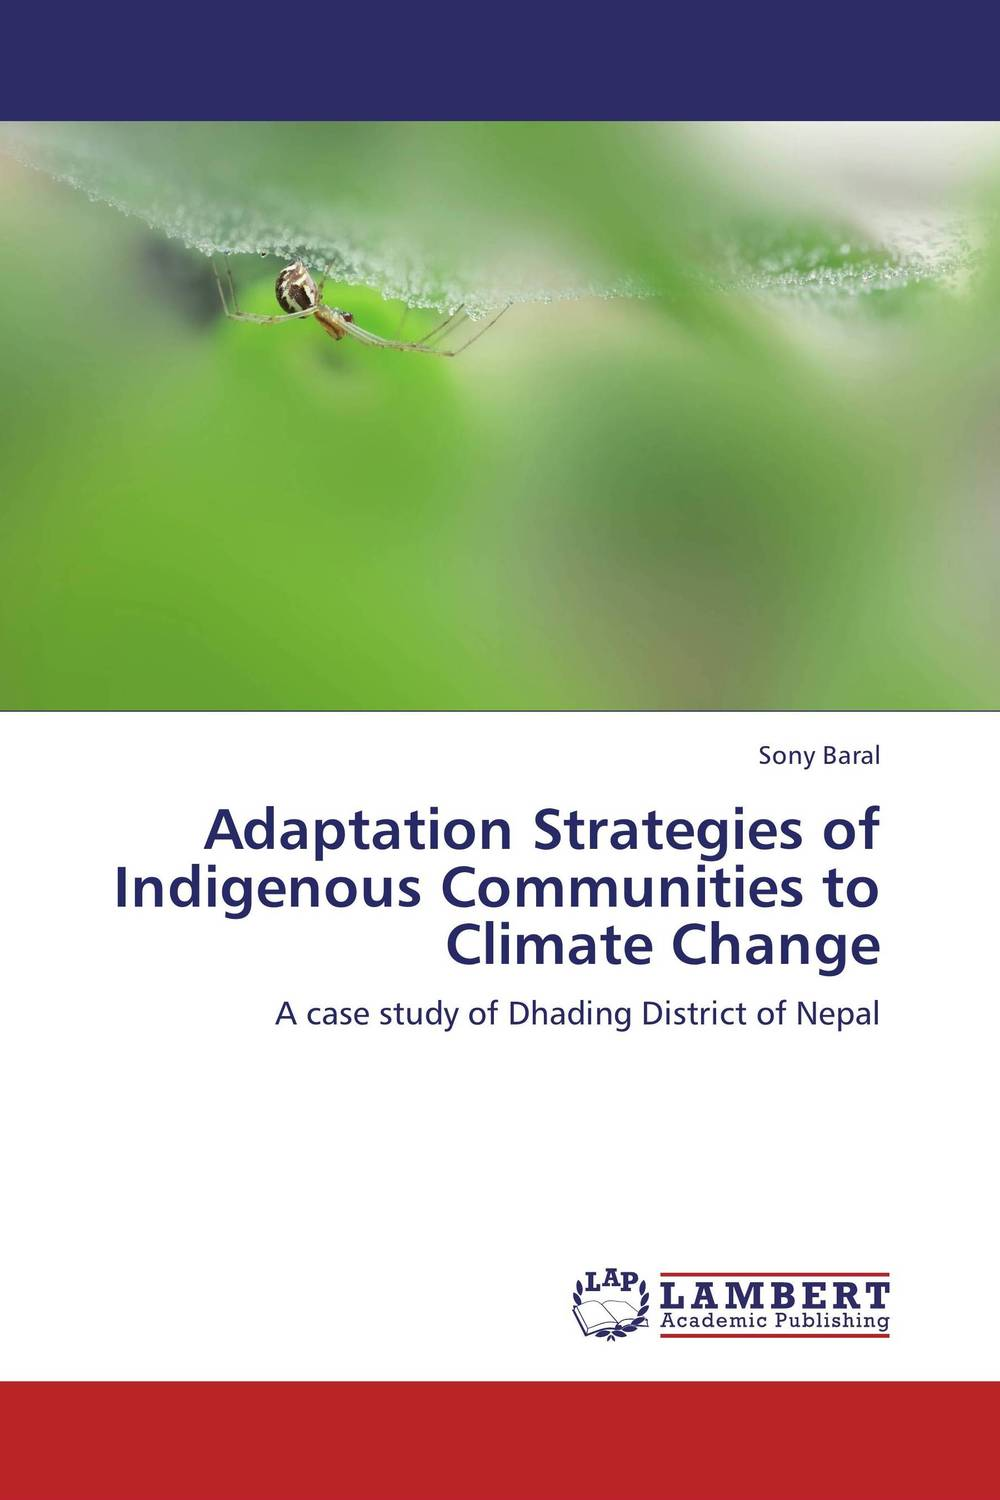 Adaptation Strategies of Indigenous Communities to Climate Change climate change initiatives and strategies